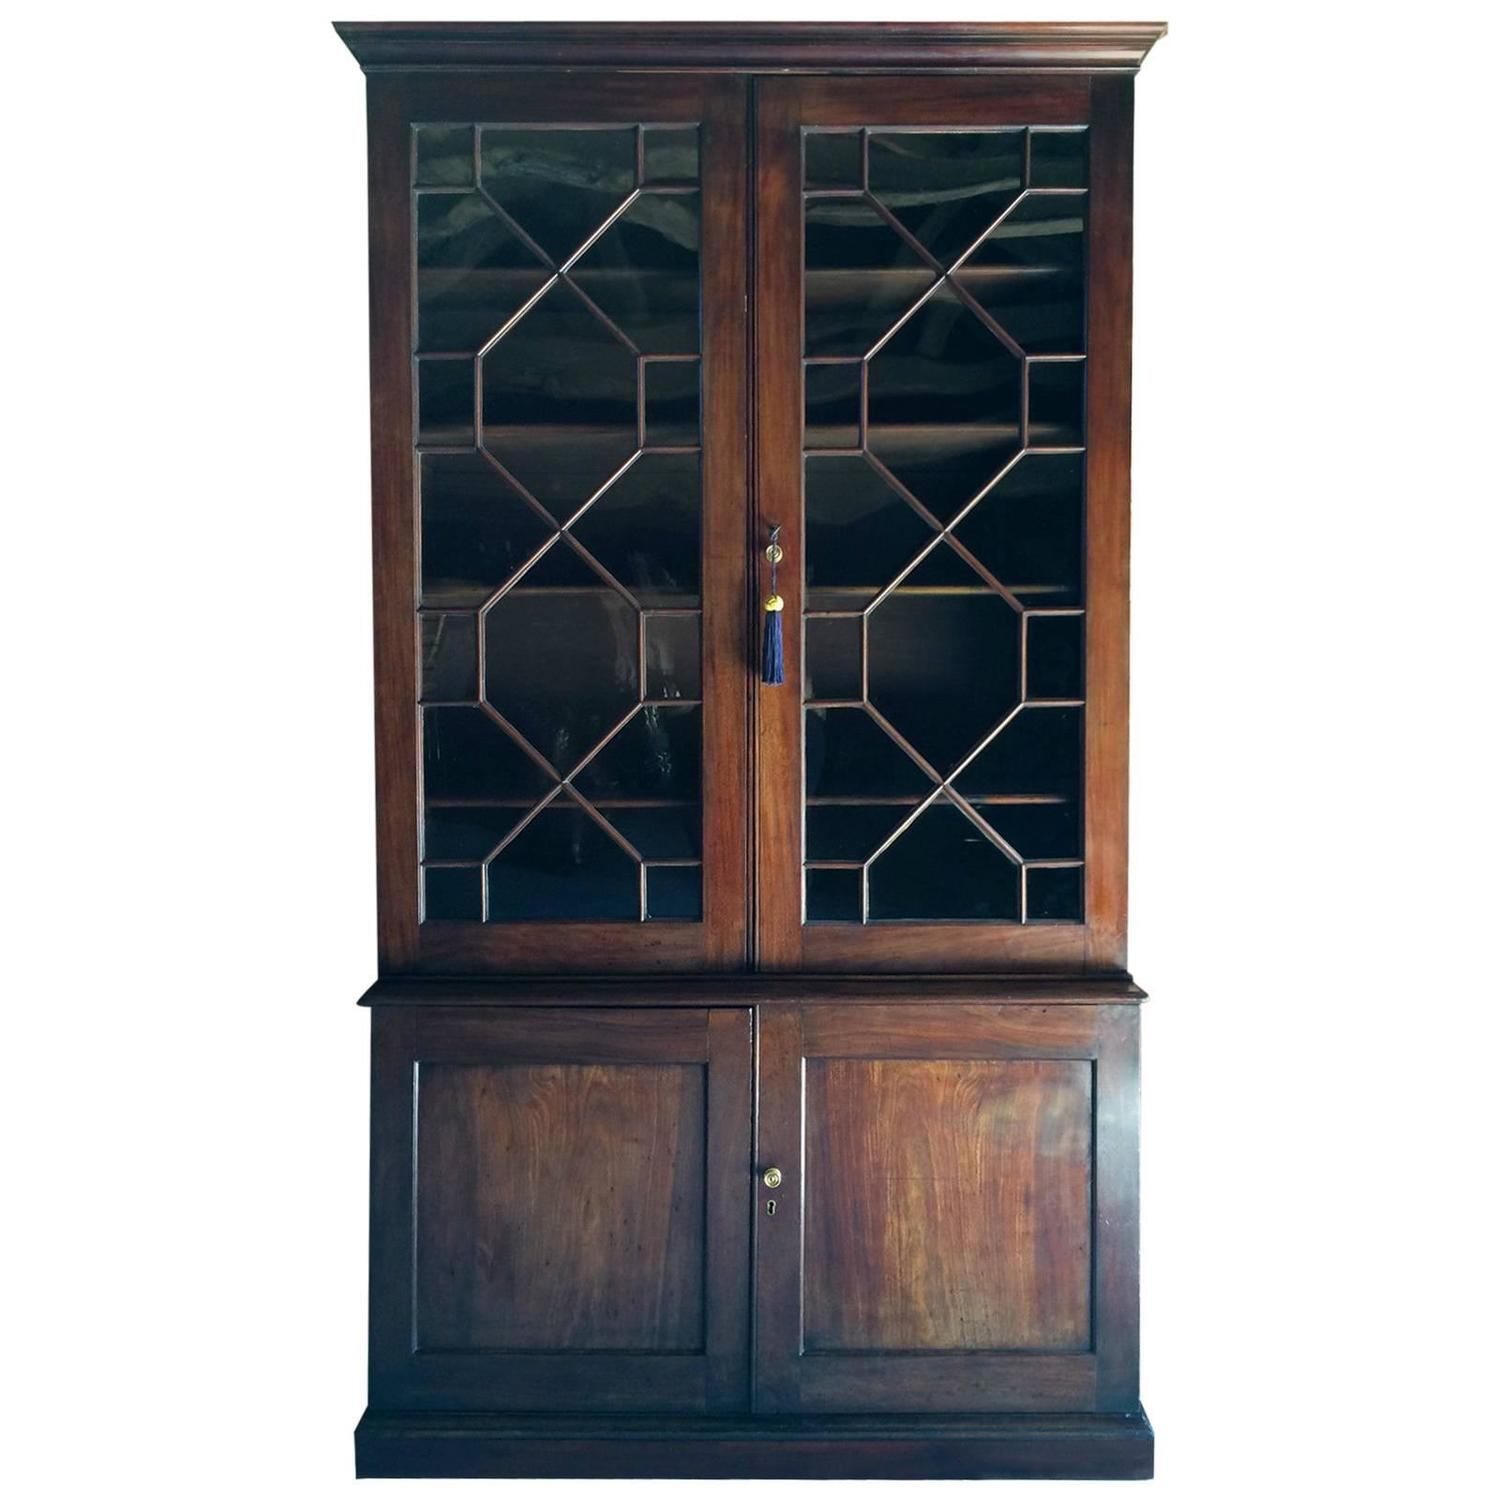 #8E593D Antique Bookcase Victorian Mahogany Display Cabinet Two  with 1500x1500 px of Recommended Mahogany Display Cabinets With Glass Doors 15001500 save image @ avoidforclosure.info